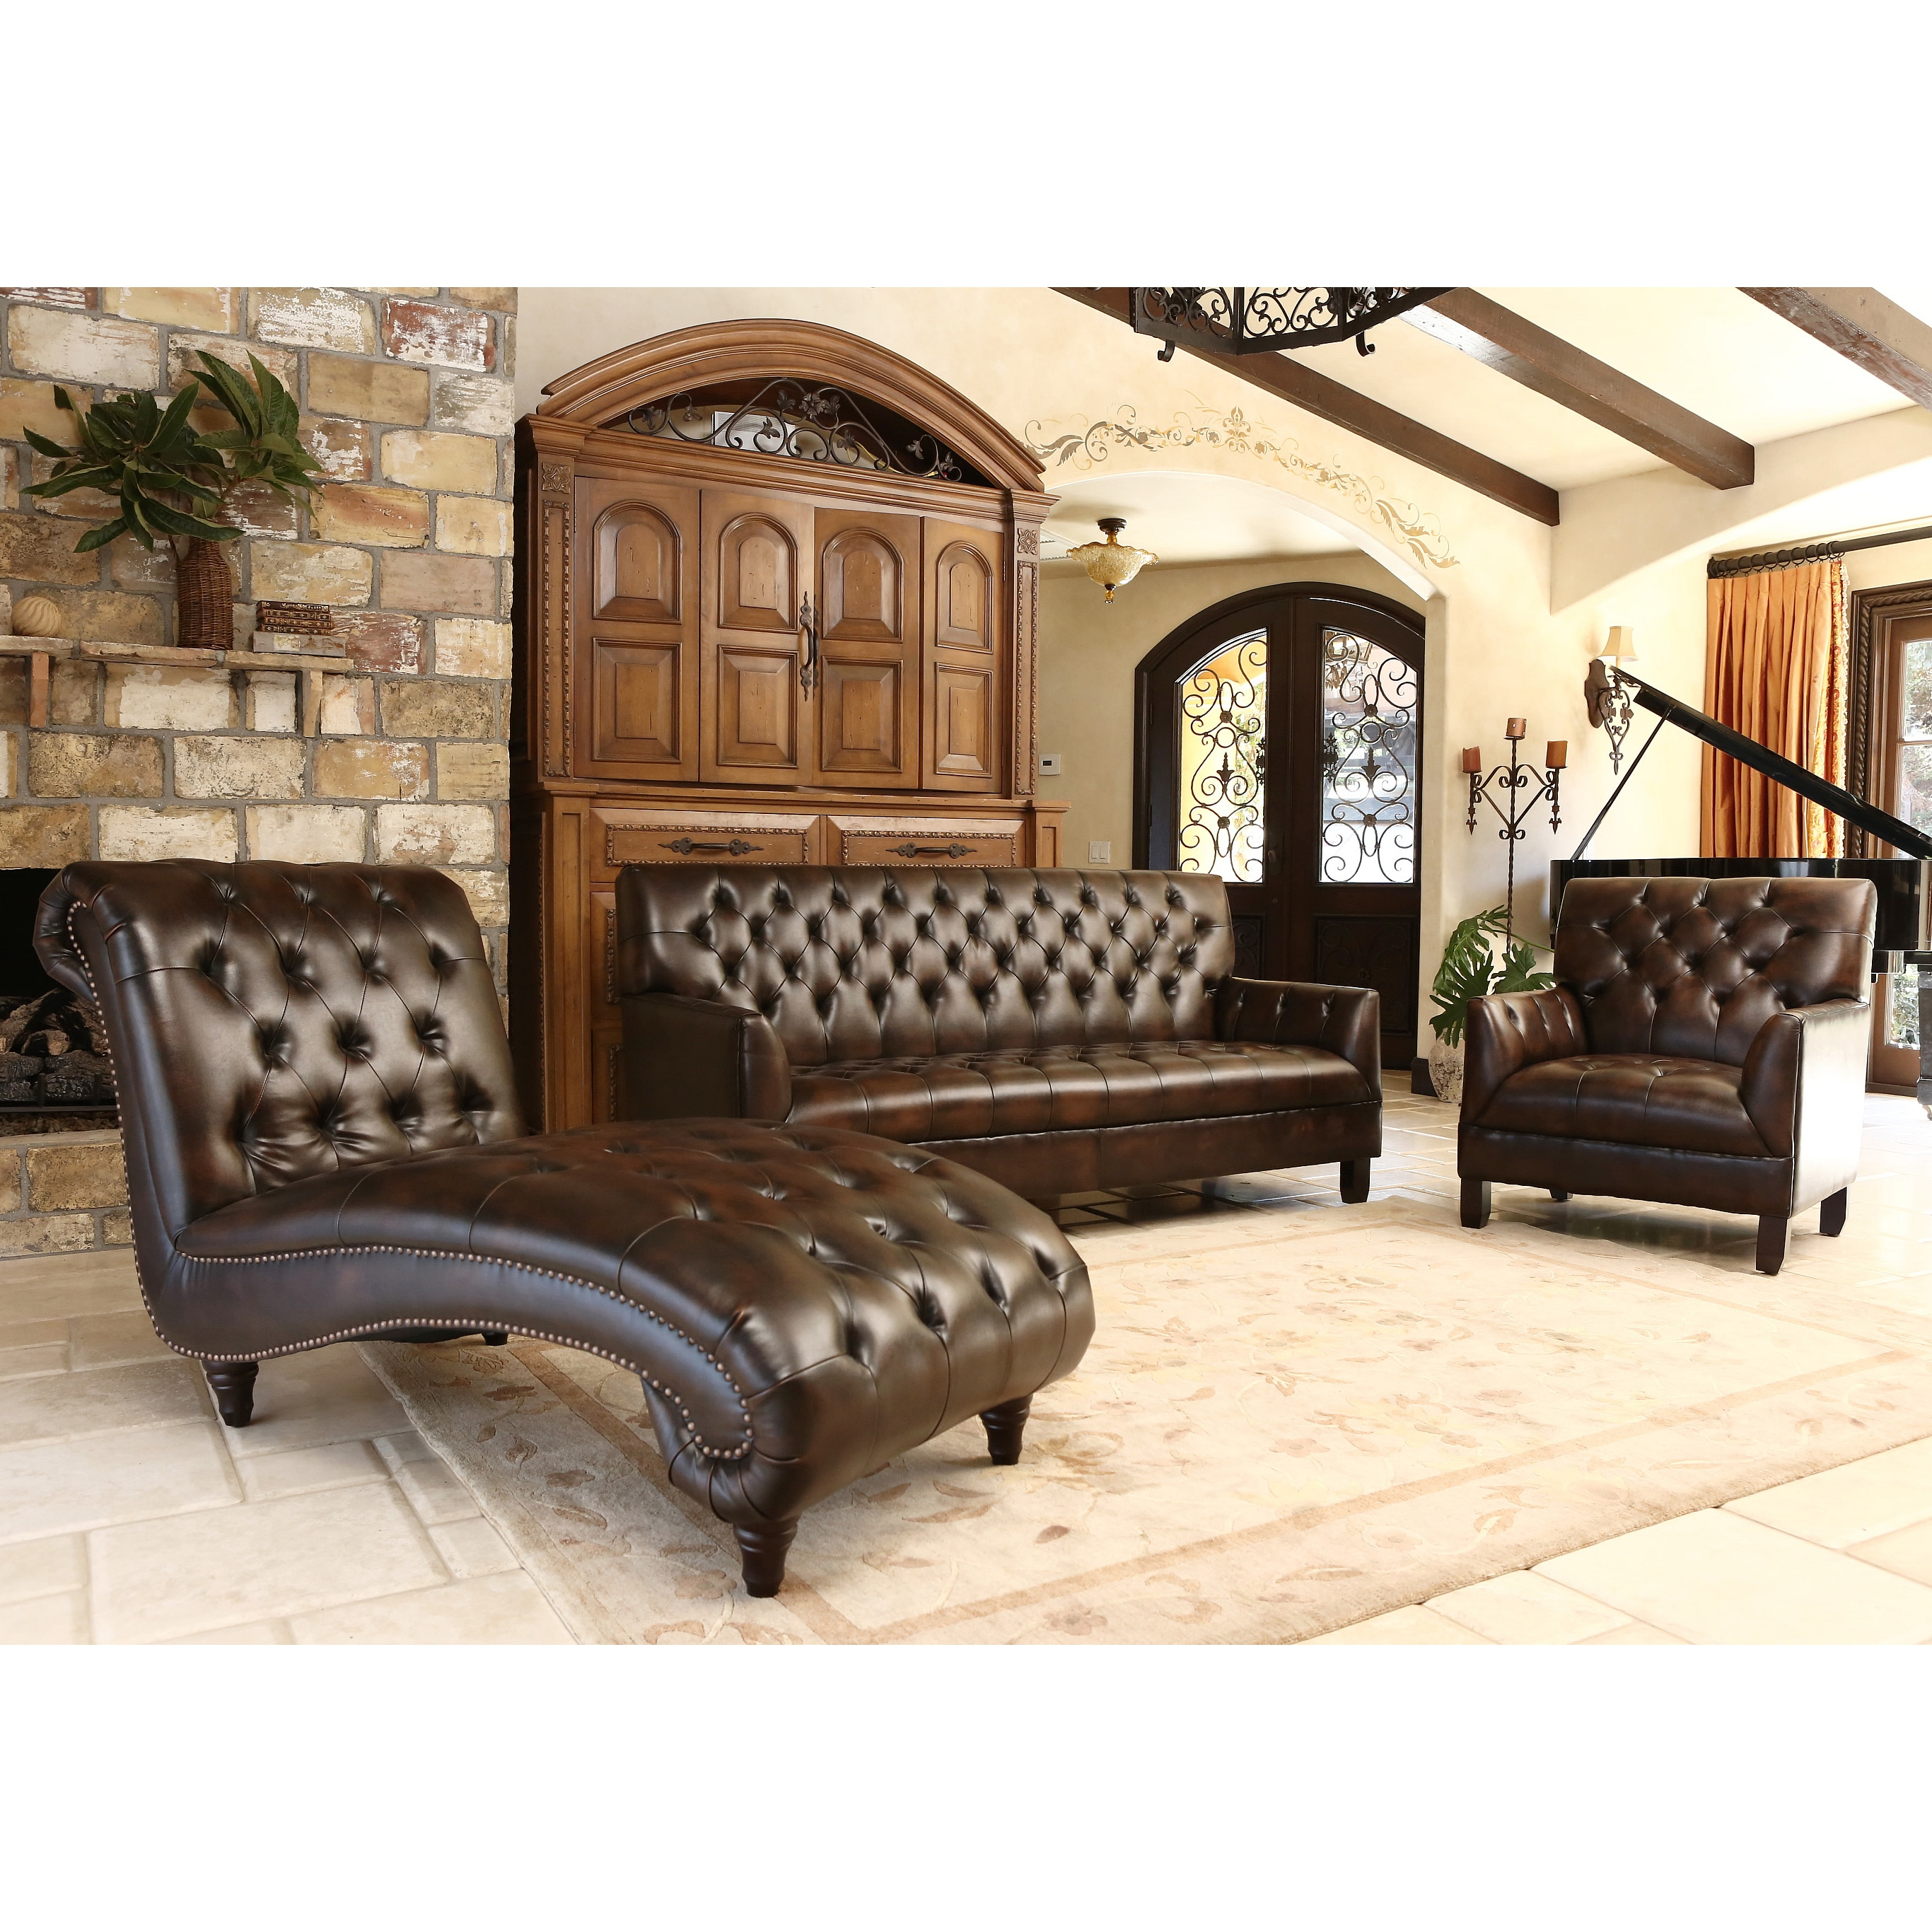 More details - Living room sets with chaise lounge ...